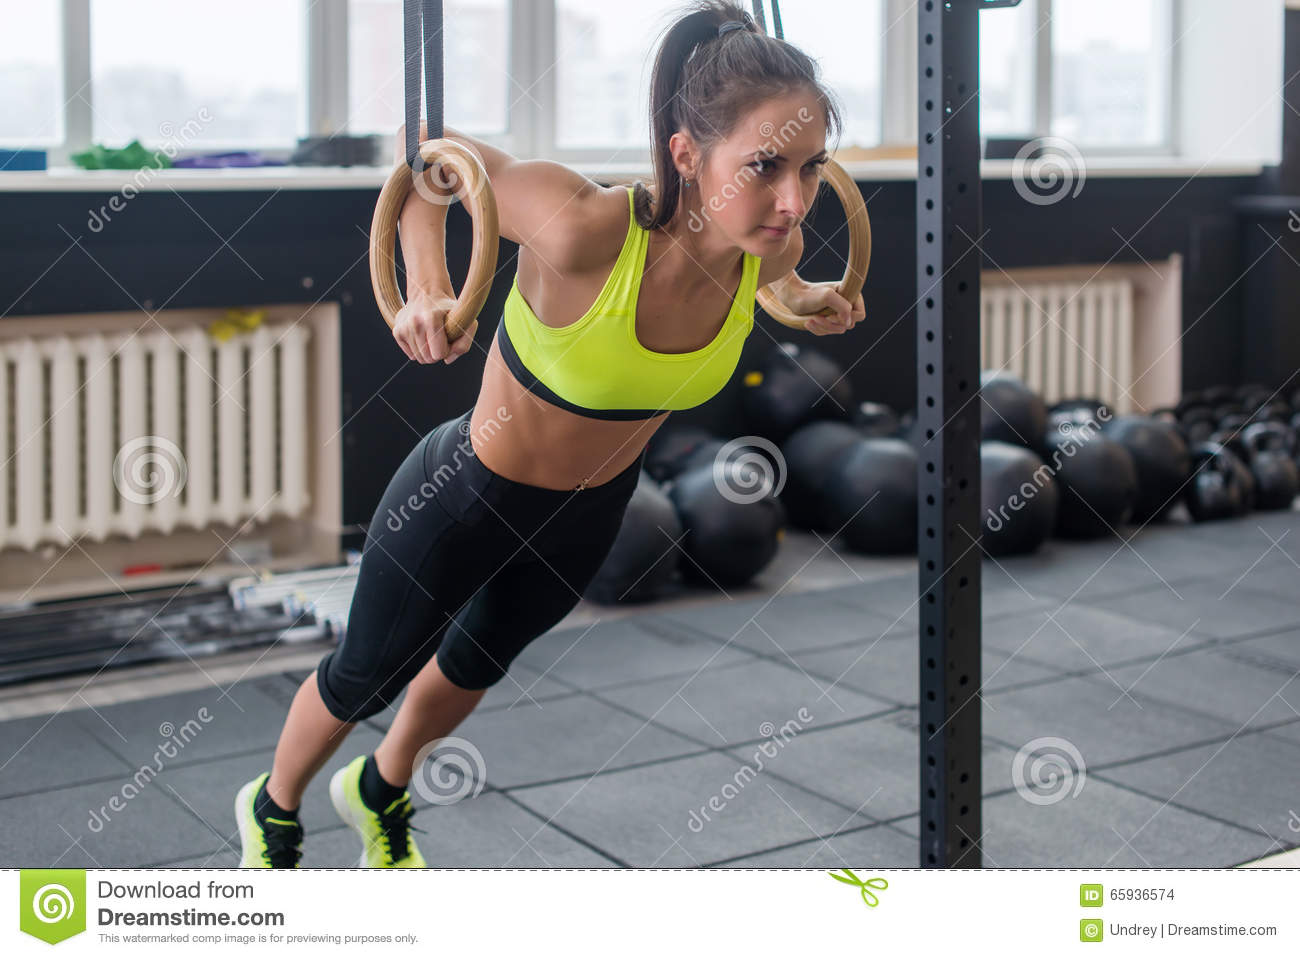 concept of lifetime fitness Find company research, competitor information, contact details & financial data for life time fitness, inc get the latest business insights from d&b hoovers.